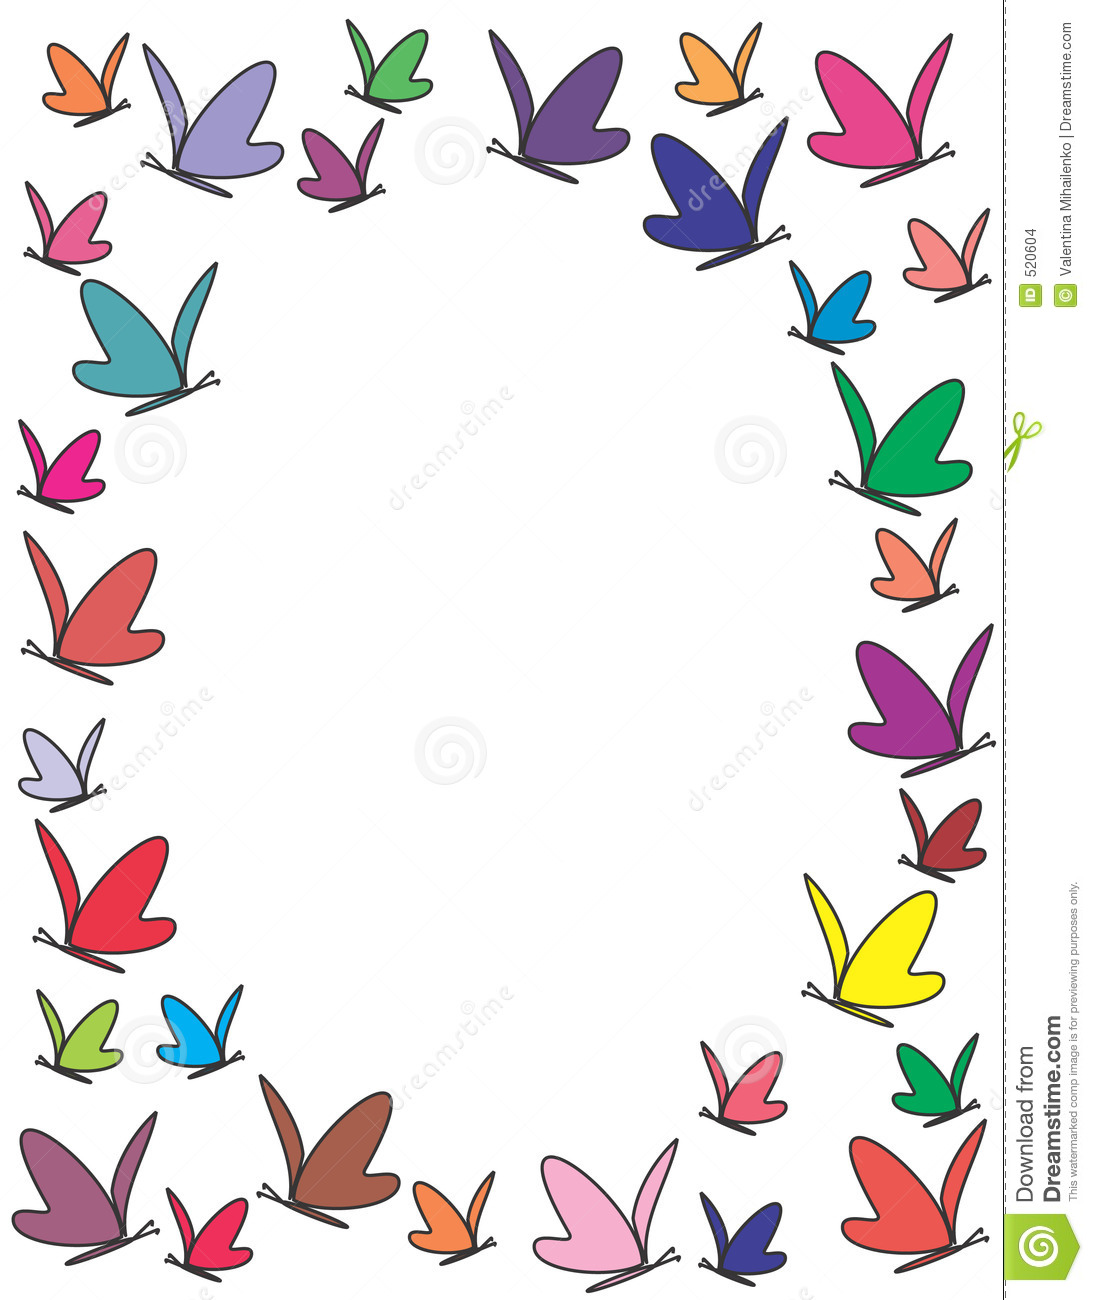 Color Butterflie...Clipart Flowers And Butterflies Border